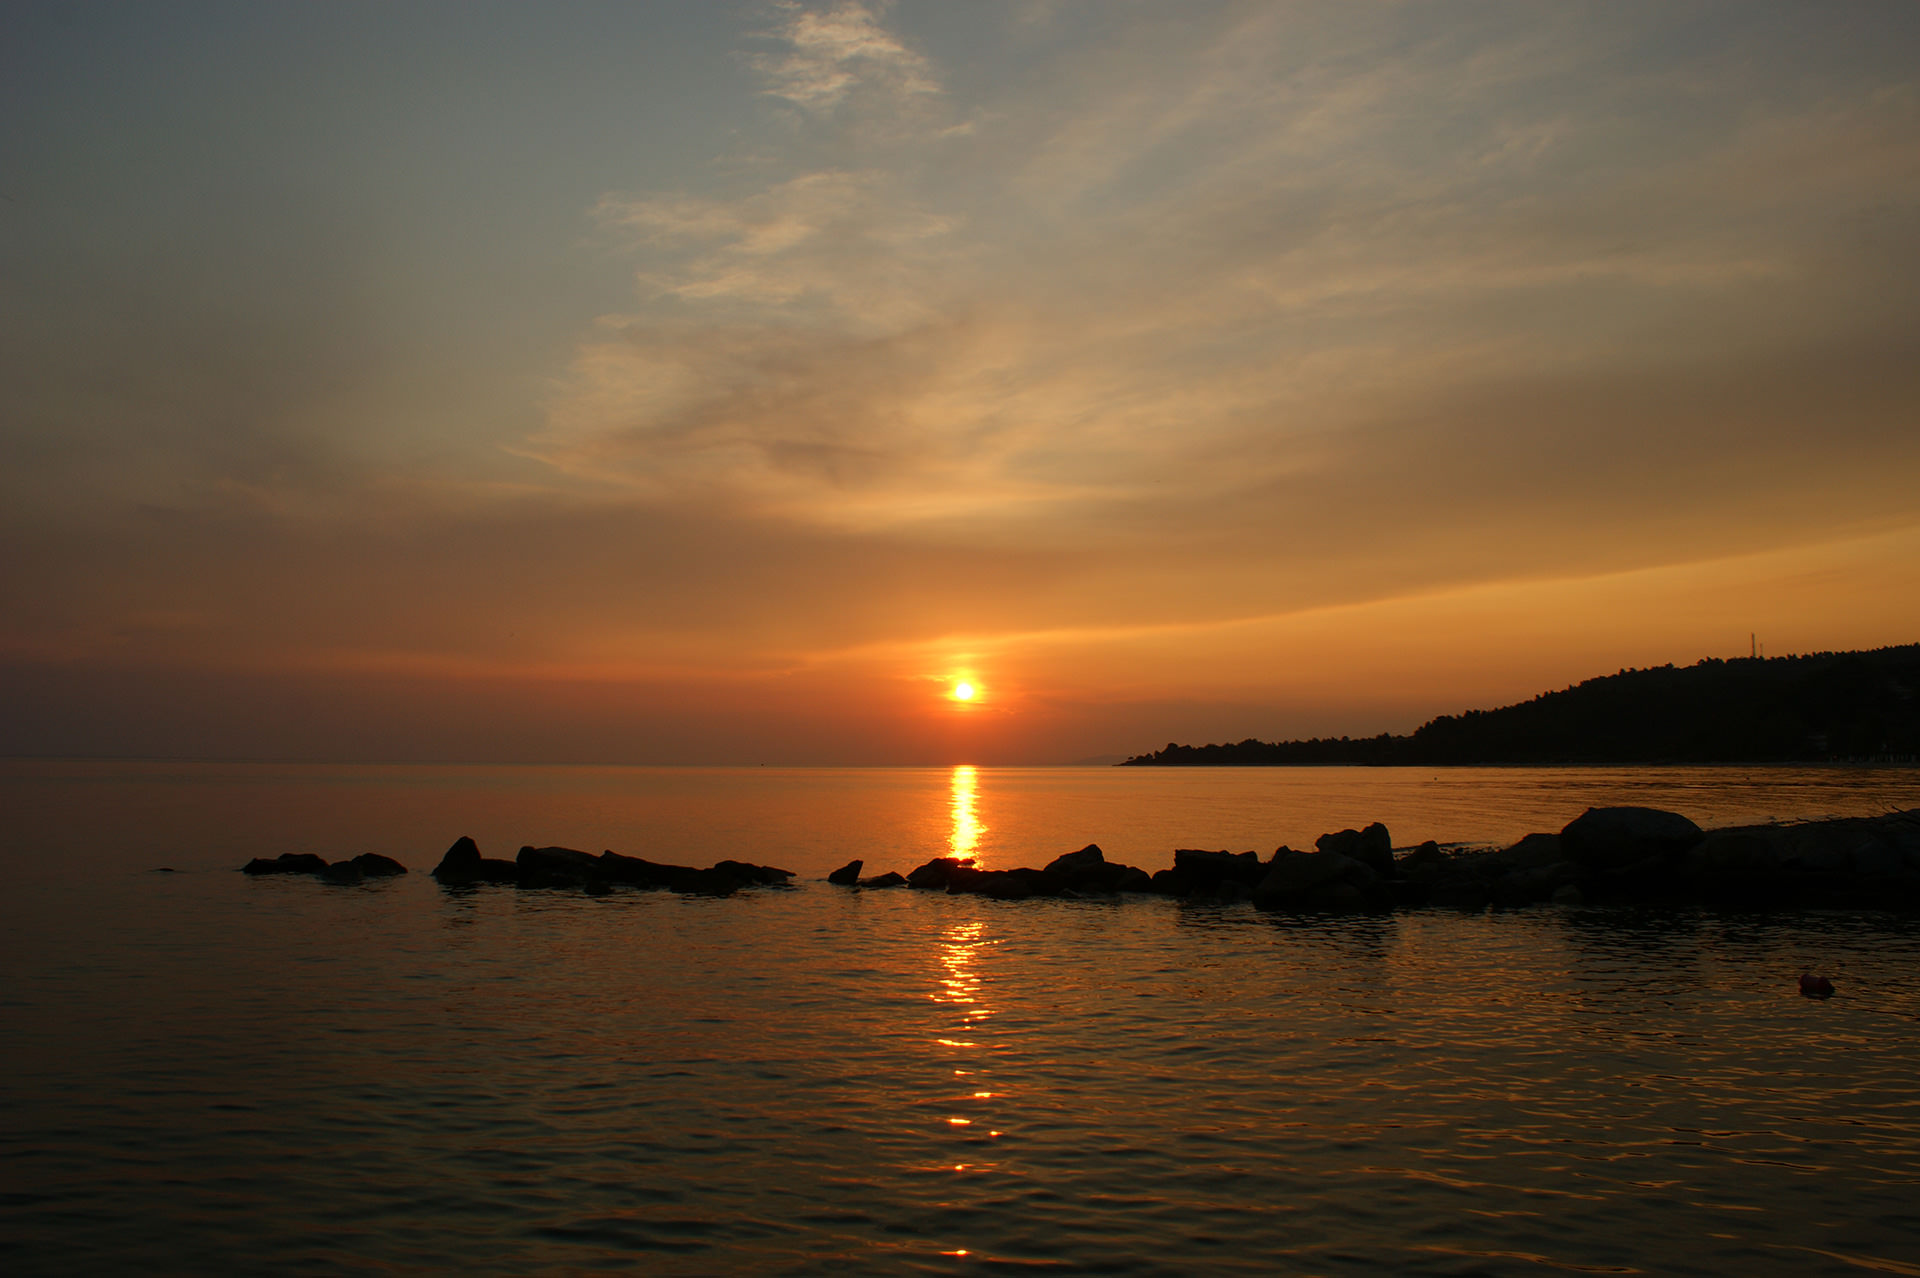 Sunset in Chalkidiki